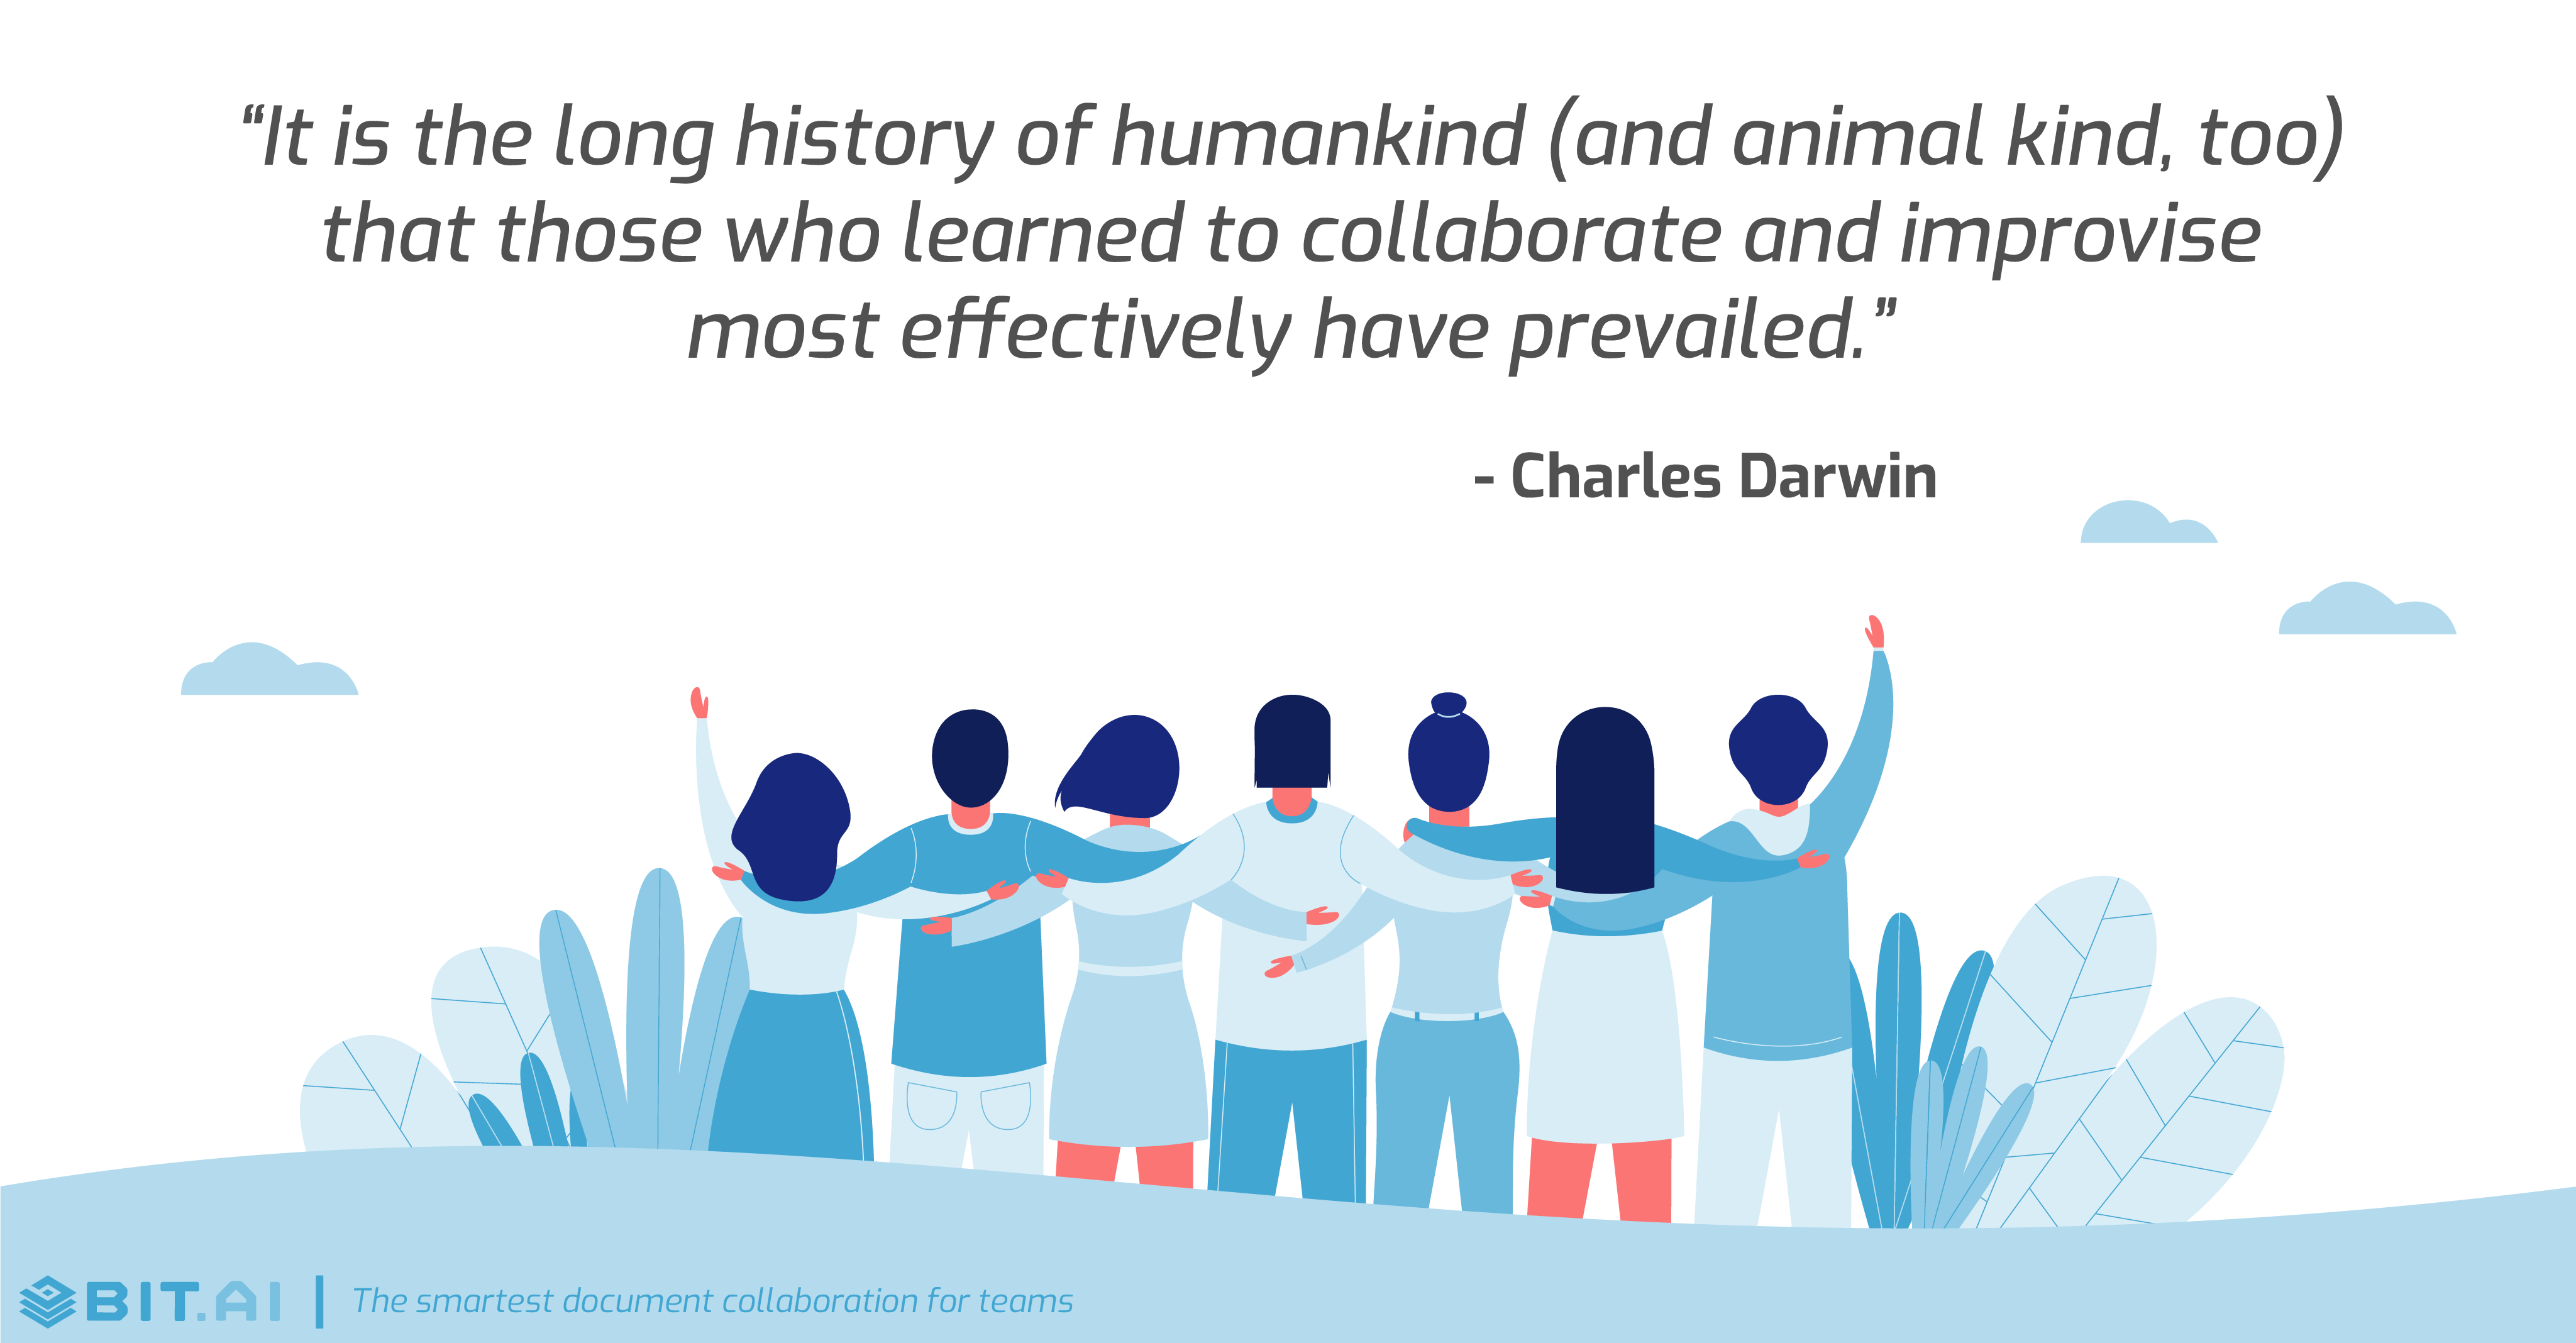 Teamwork collaboration quote by Charles Darwin